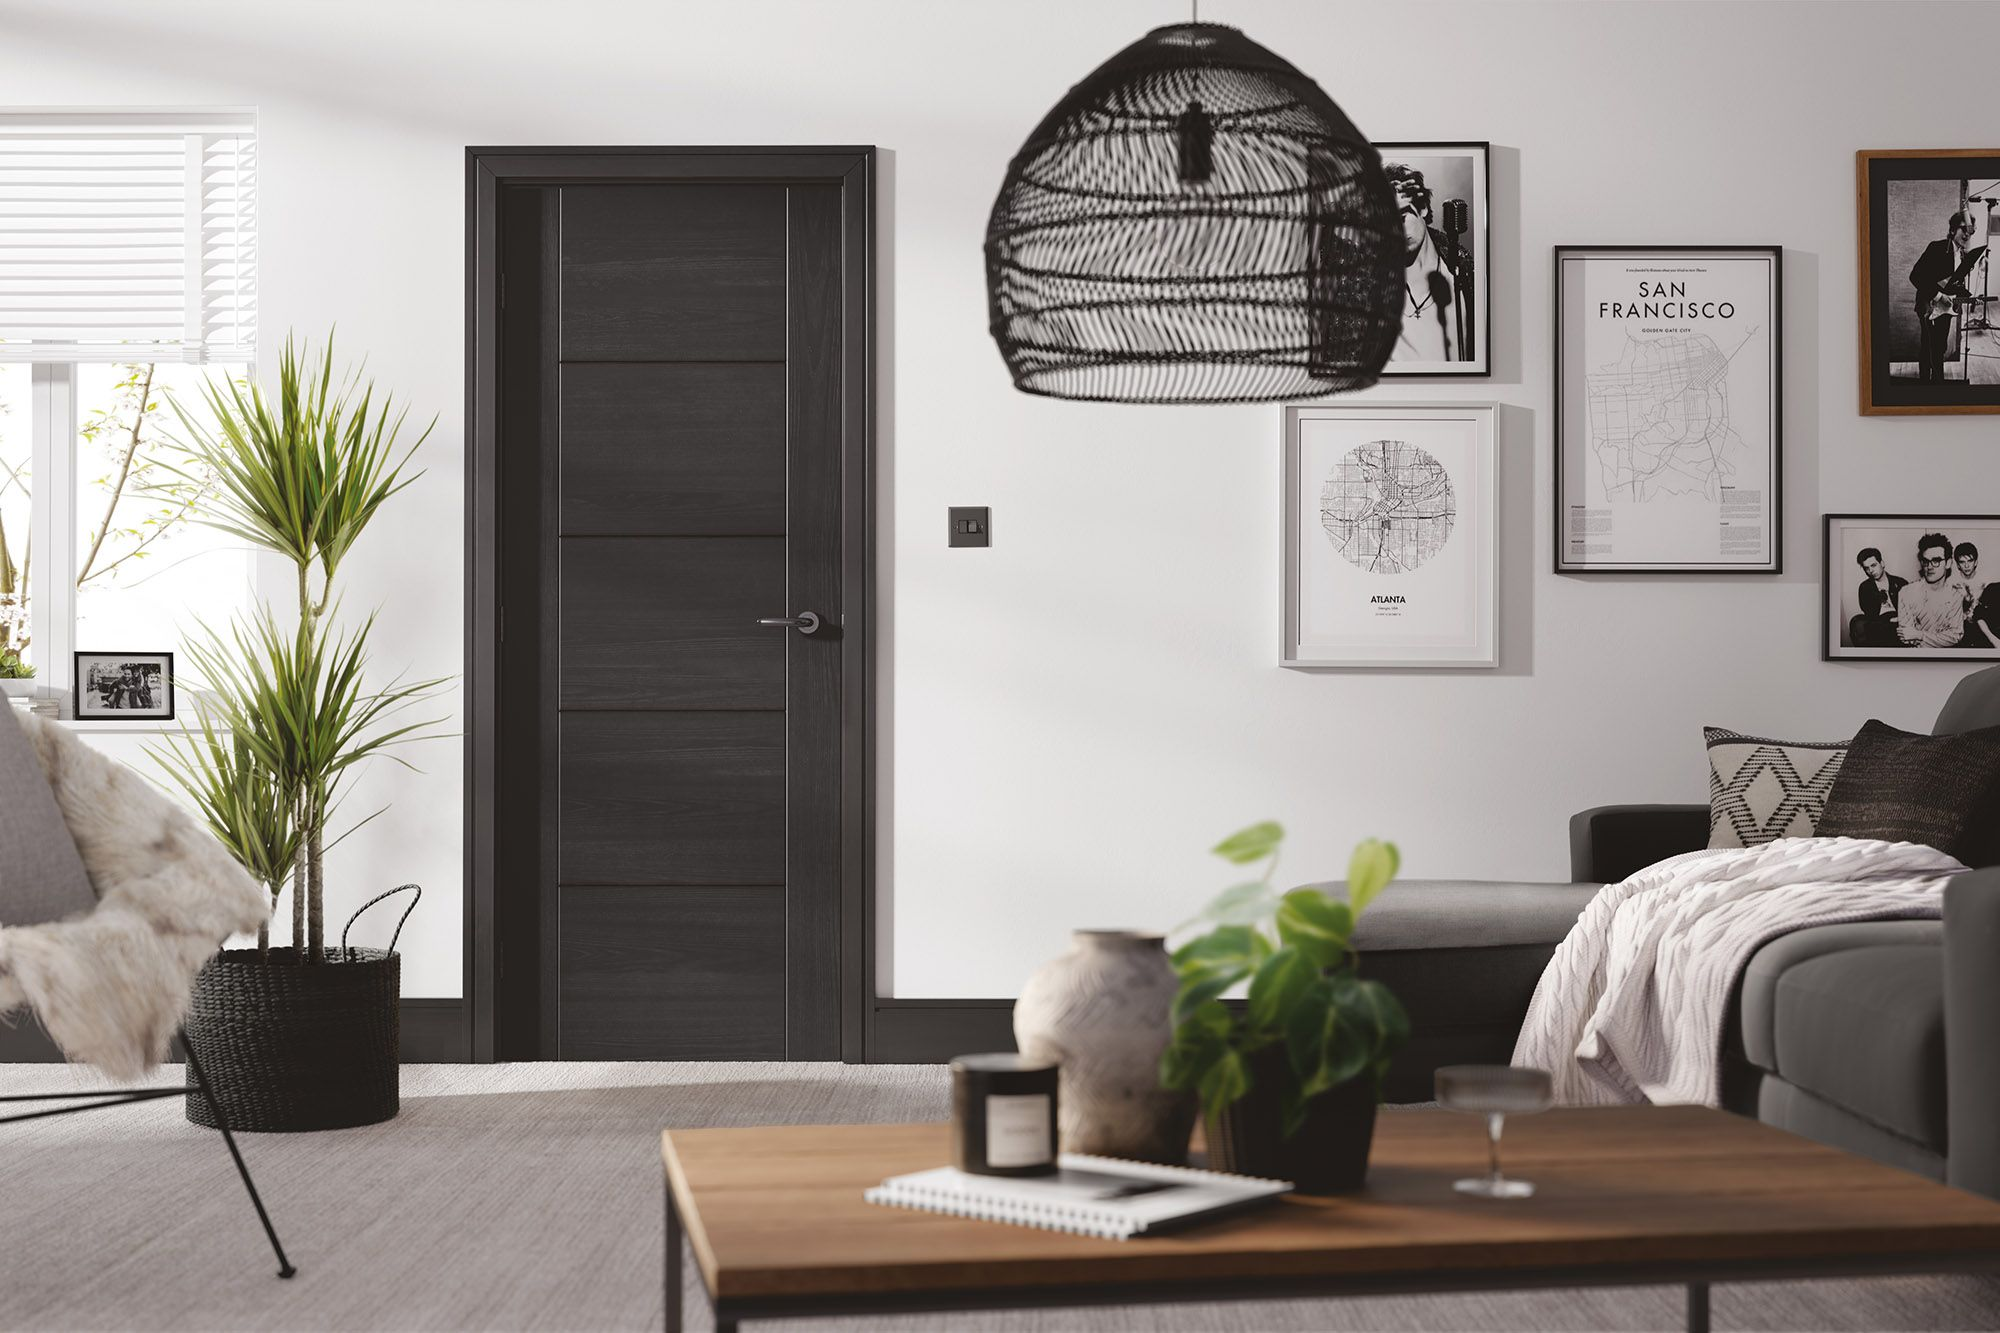 Charcoal paint finished Vancouver internal door